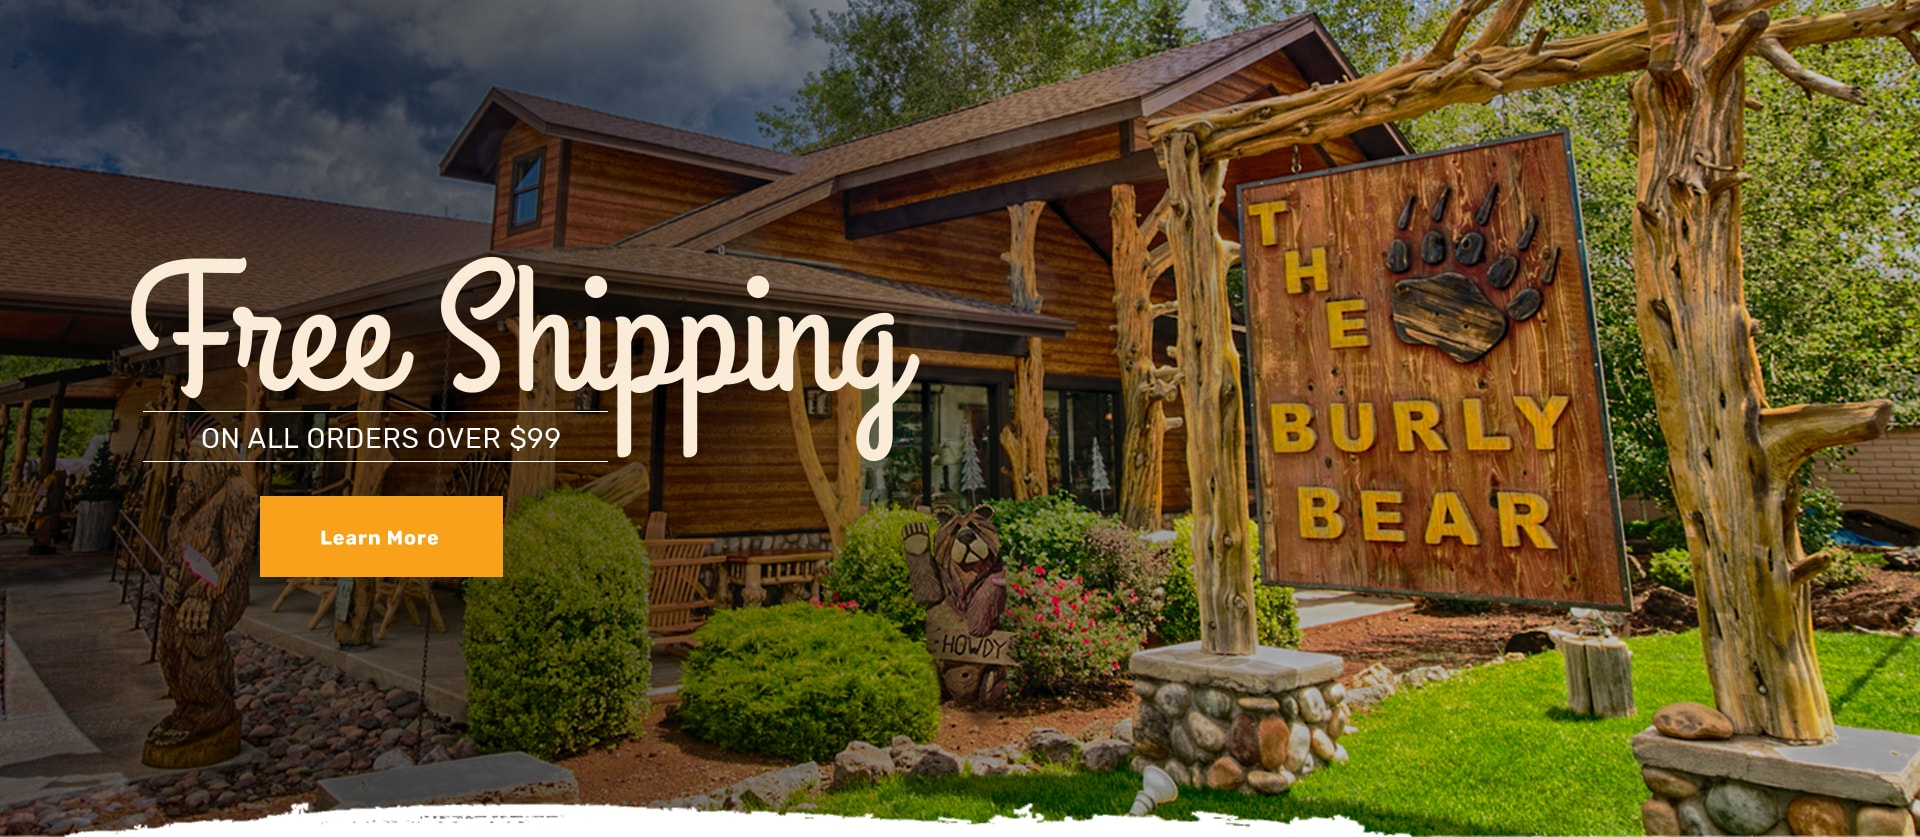 Shop Rustic Home Decor Bedding And Chainsaw Art